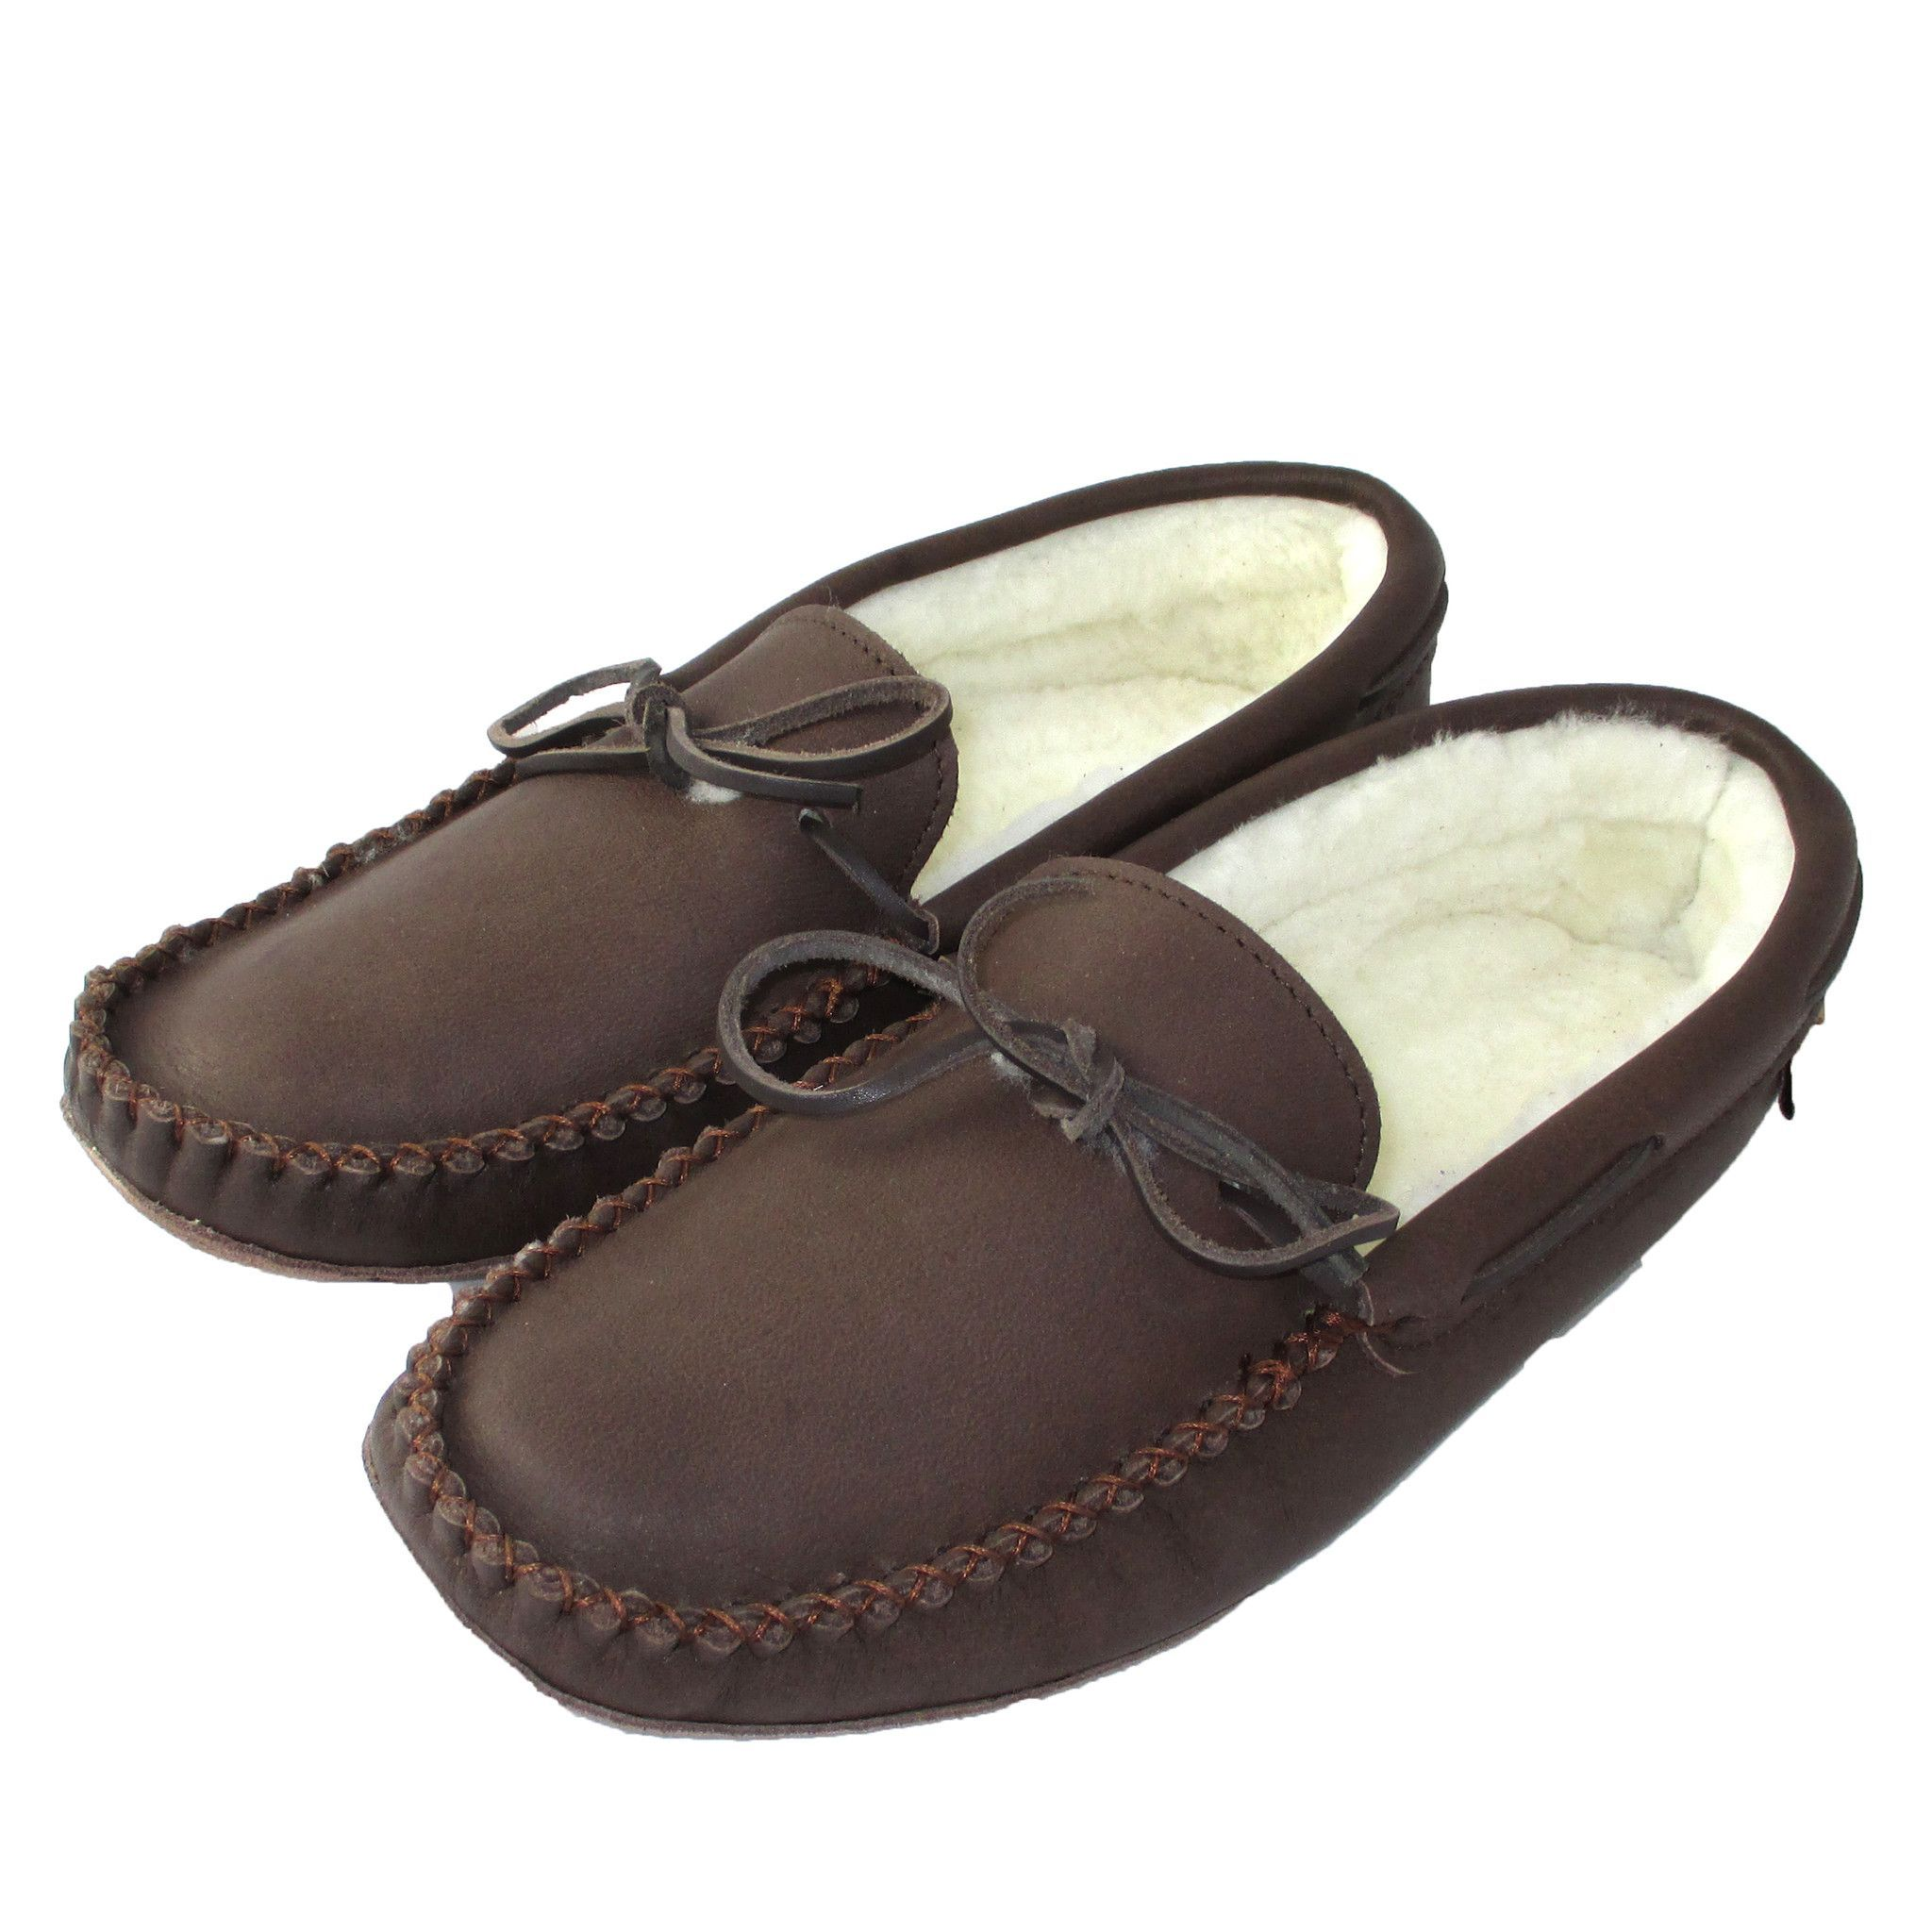 a2a1bfd17a1 Men s Sheepskin Lined Dark Brown Moccasin Slippers